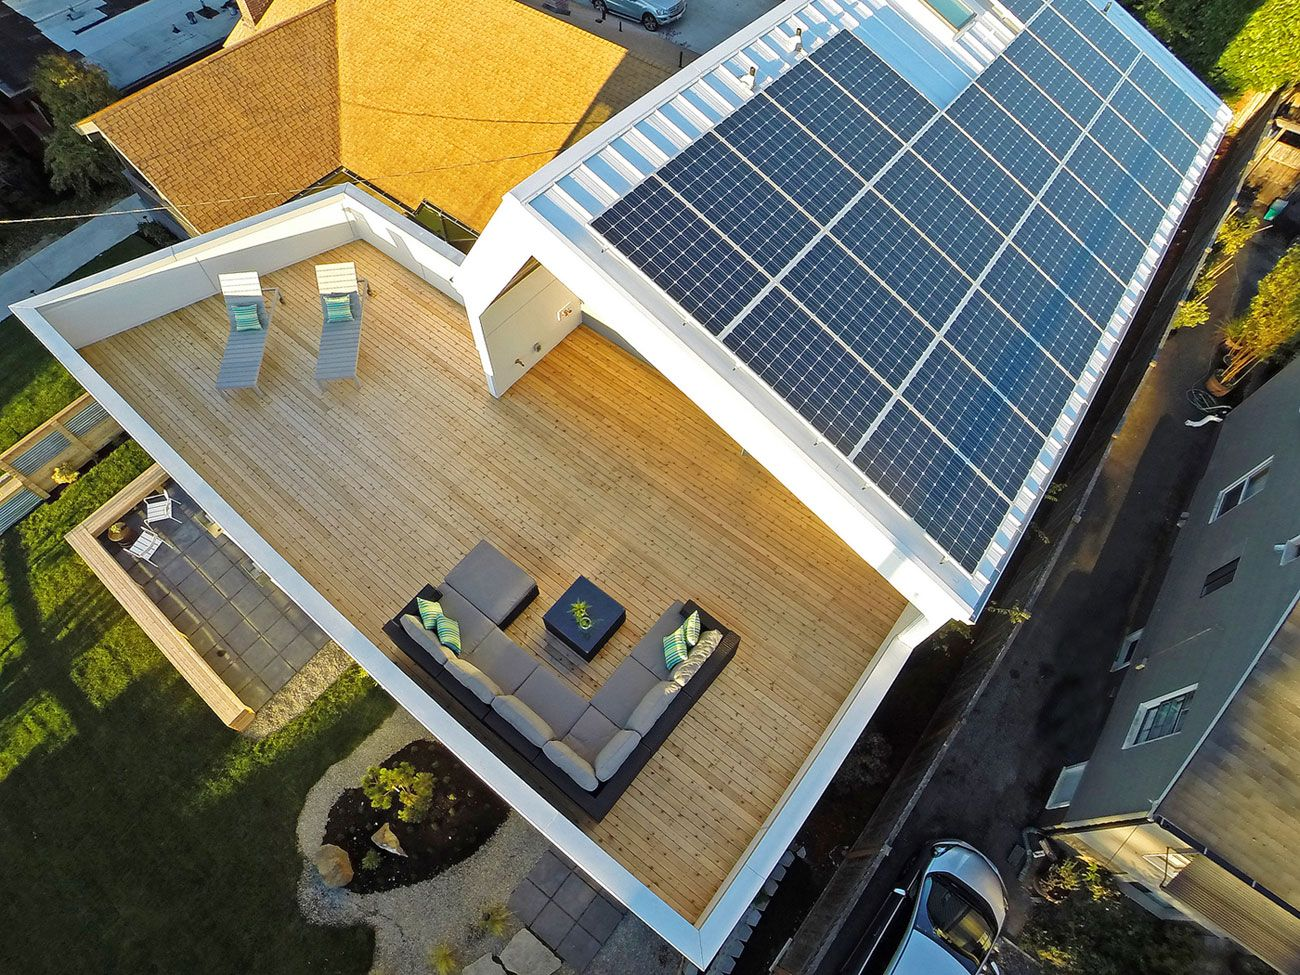 Unexpected Roof Design For Solar Panels In This Net Zero Home Solar Panels Roof Solar Panels Solar Panel Roof Design